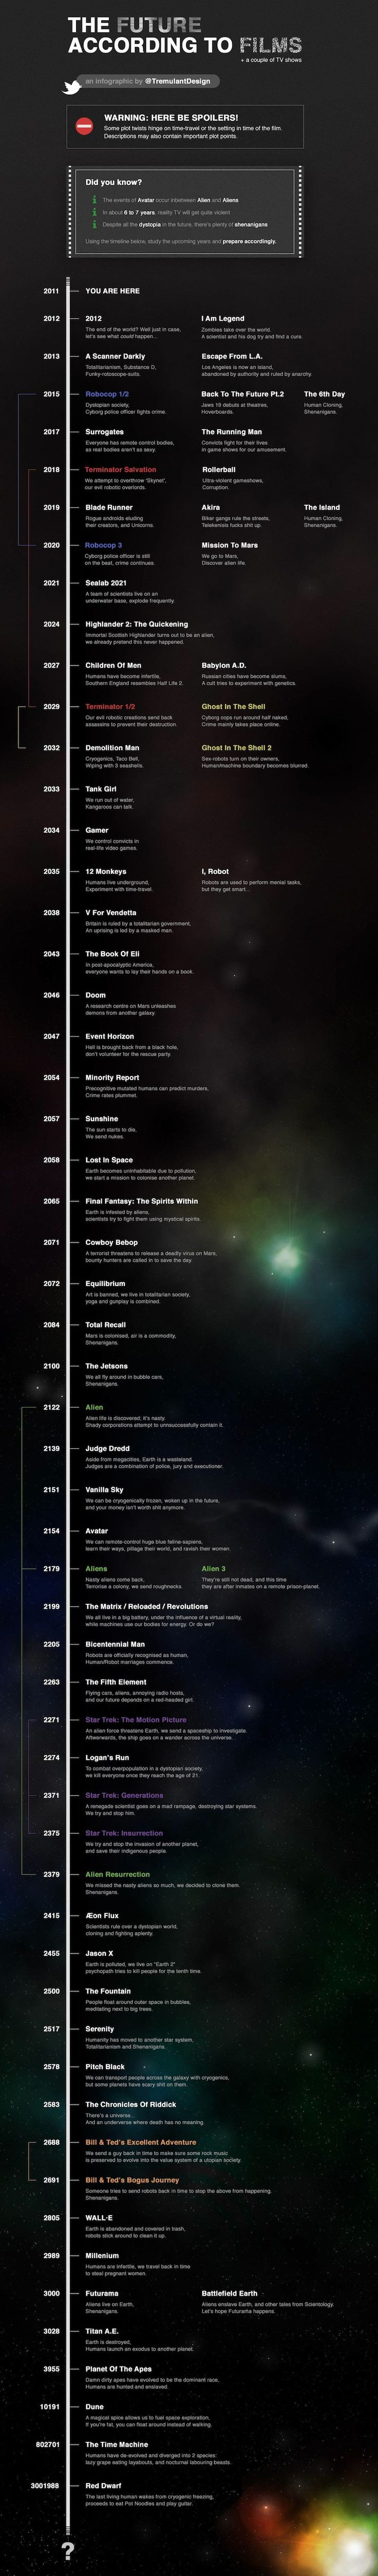 The Future according to films: Stuff, Future, Scifi, Movies, Timeline, Sci Fi, Infographics, Films Infographic